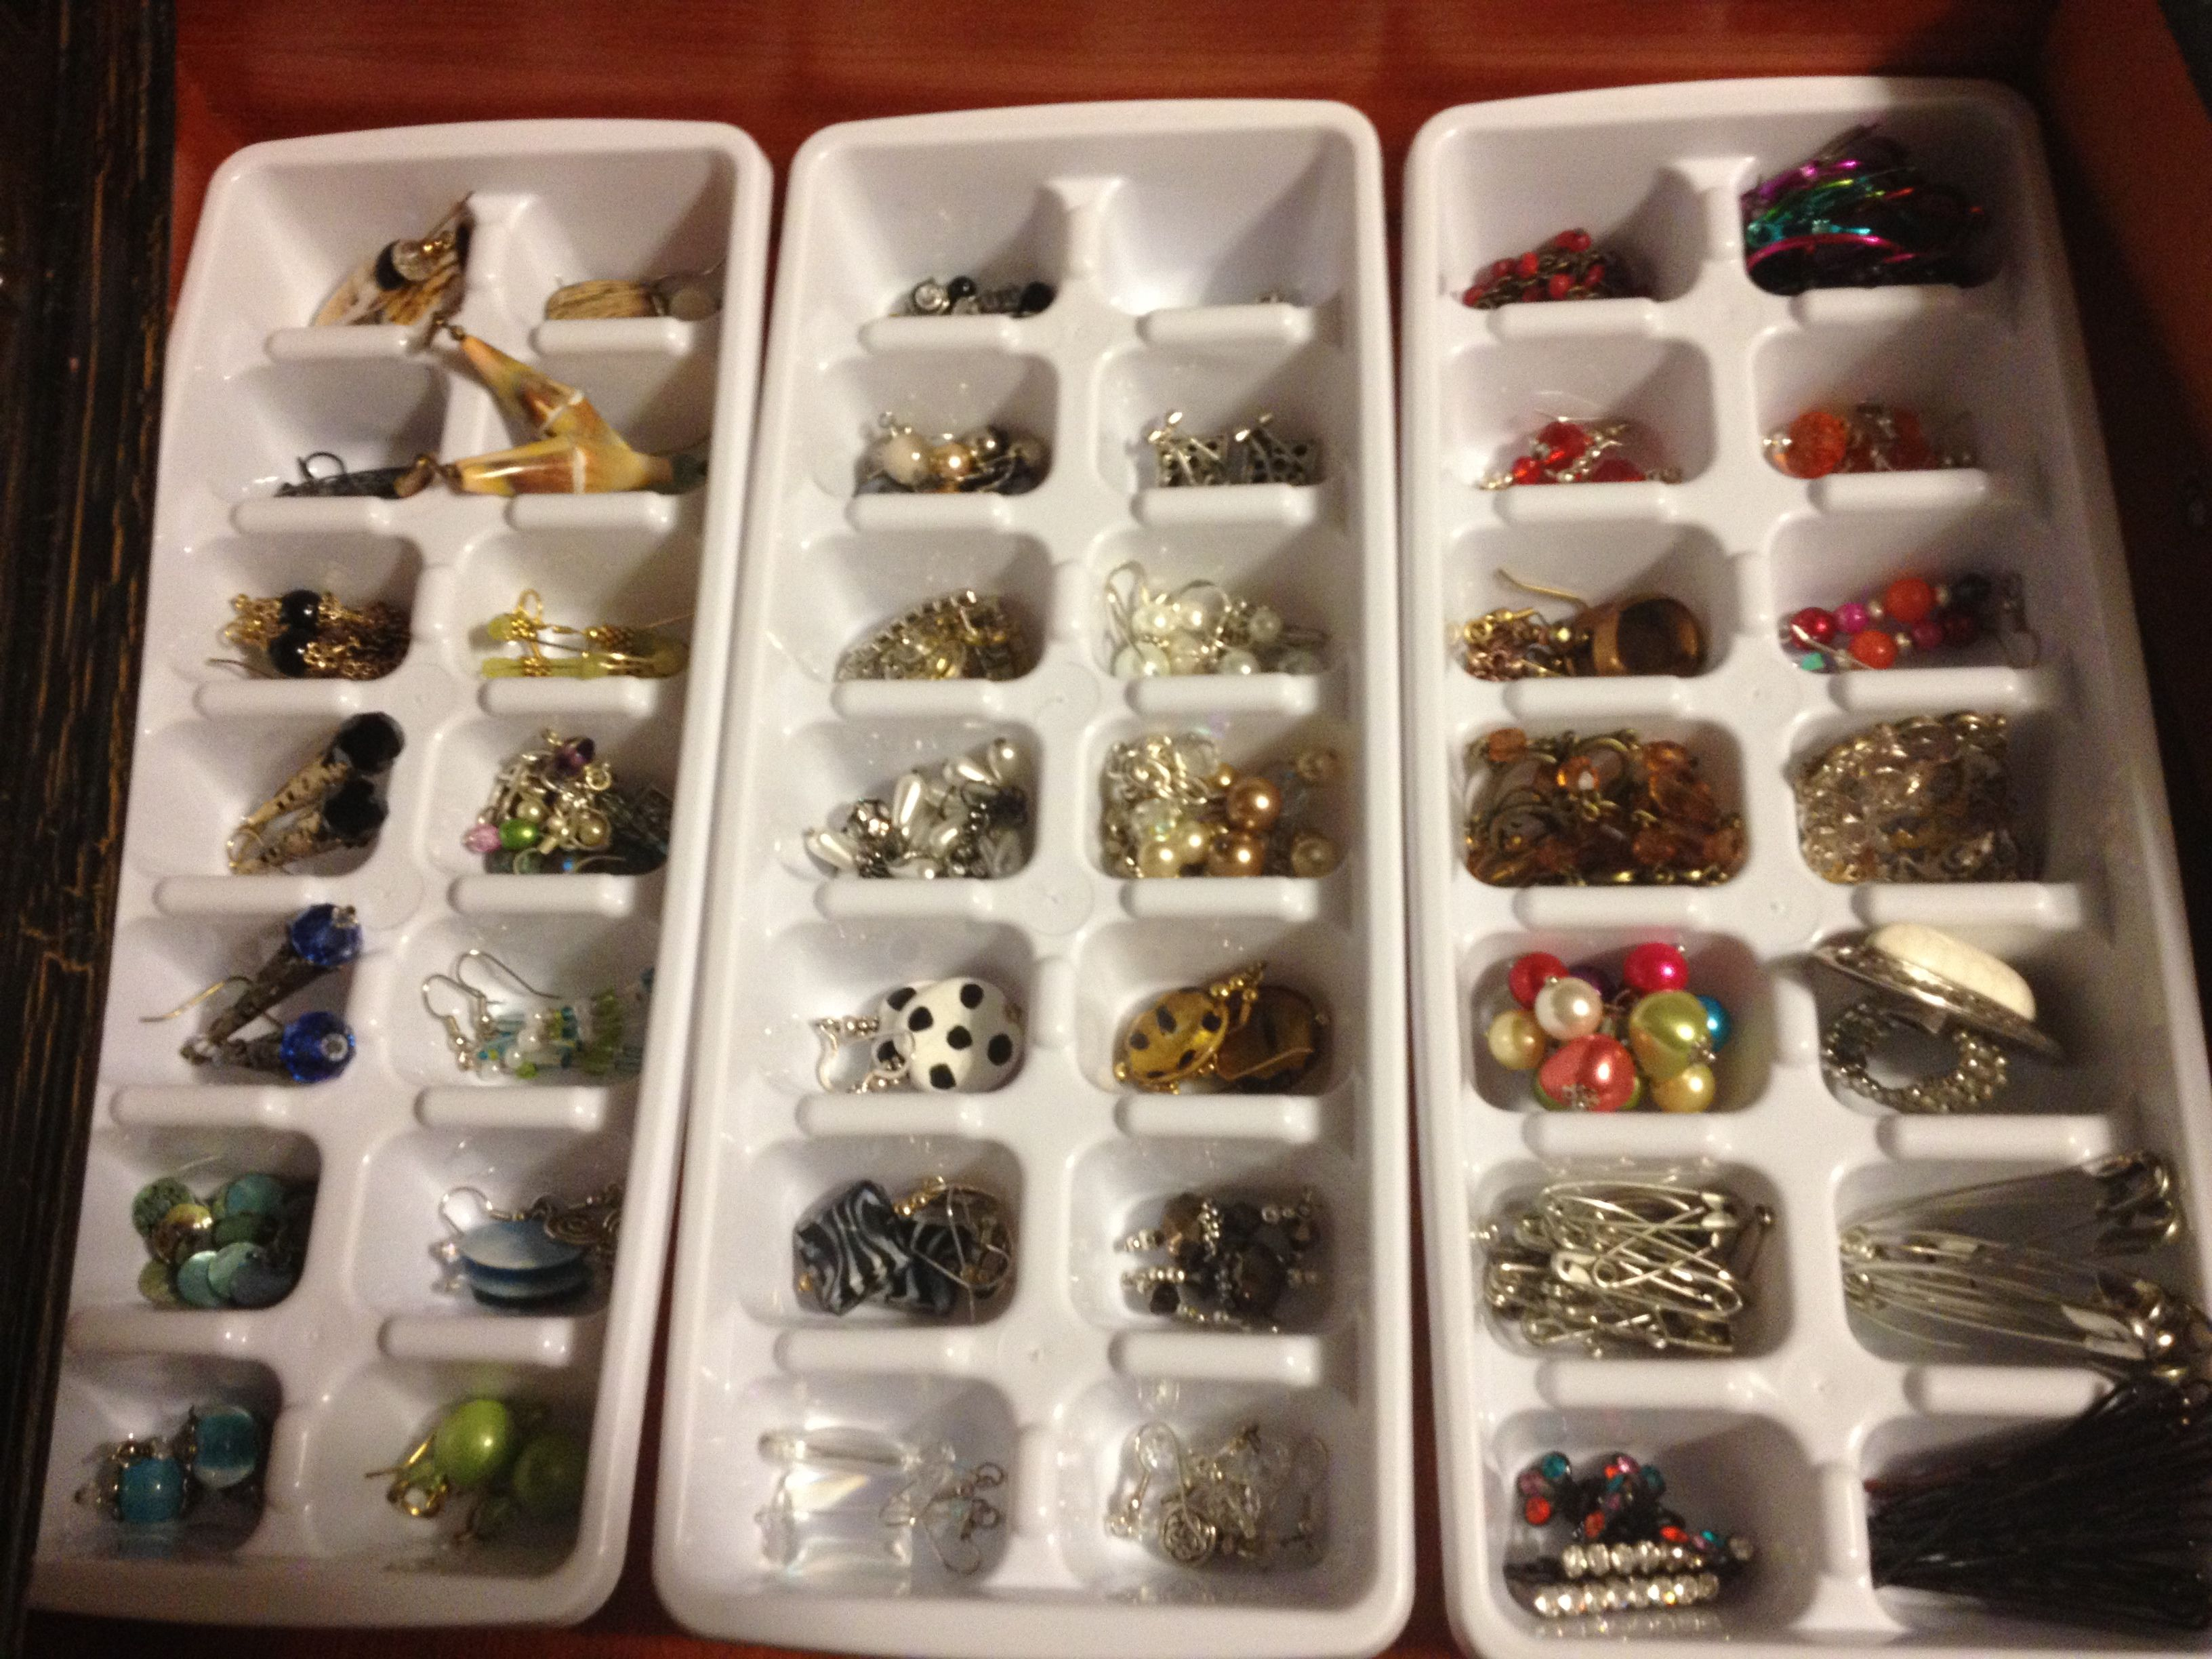 Ice Trays Jewelry Organizers 3 for 1 at Dollar Tree